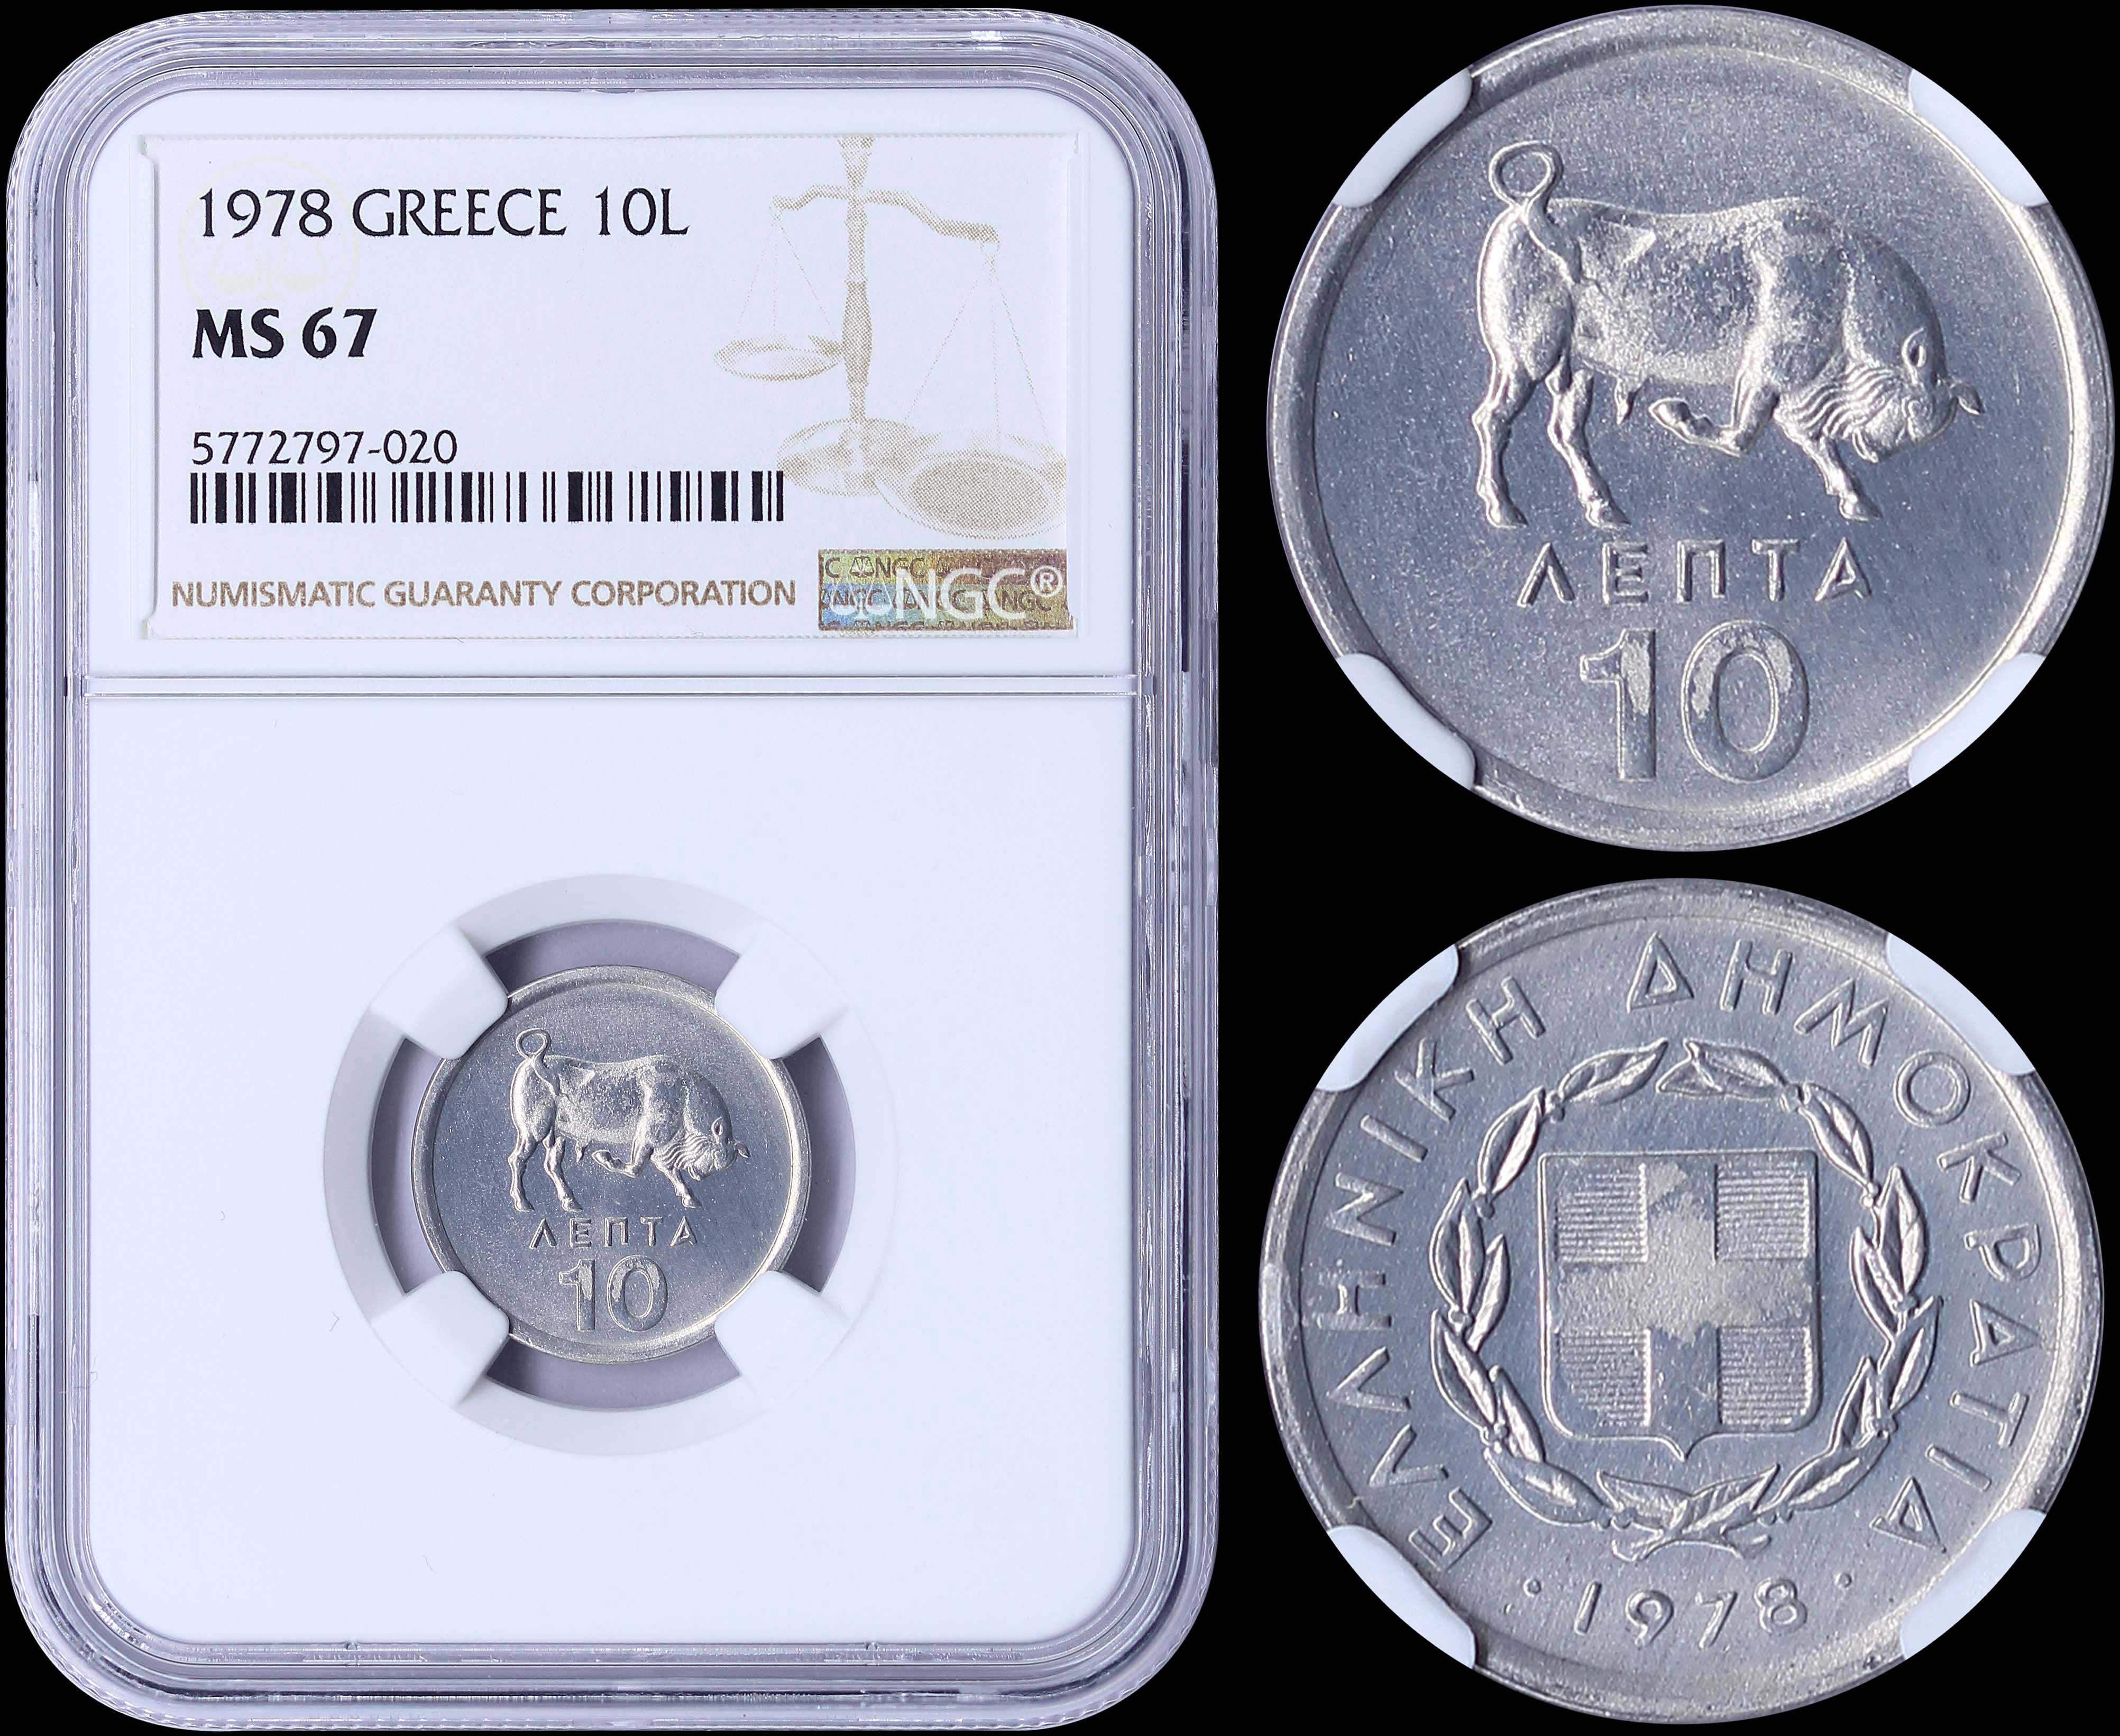 Lot 6215 - -  COINS & TOKENS HELLENIC REPUBLIC & COMMEMORATIVE ISSUES -  A. Karamitsos Public & Live Internet Auction 671 (Part A)